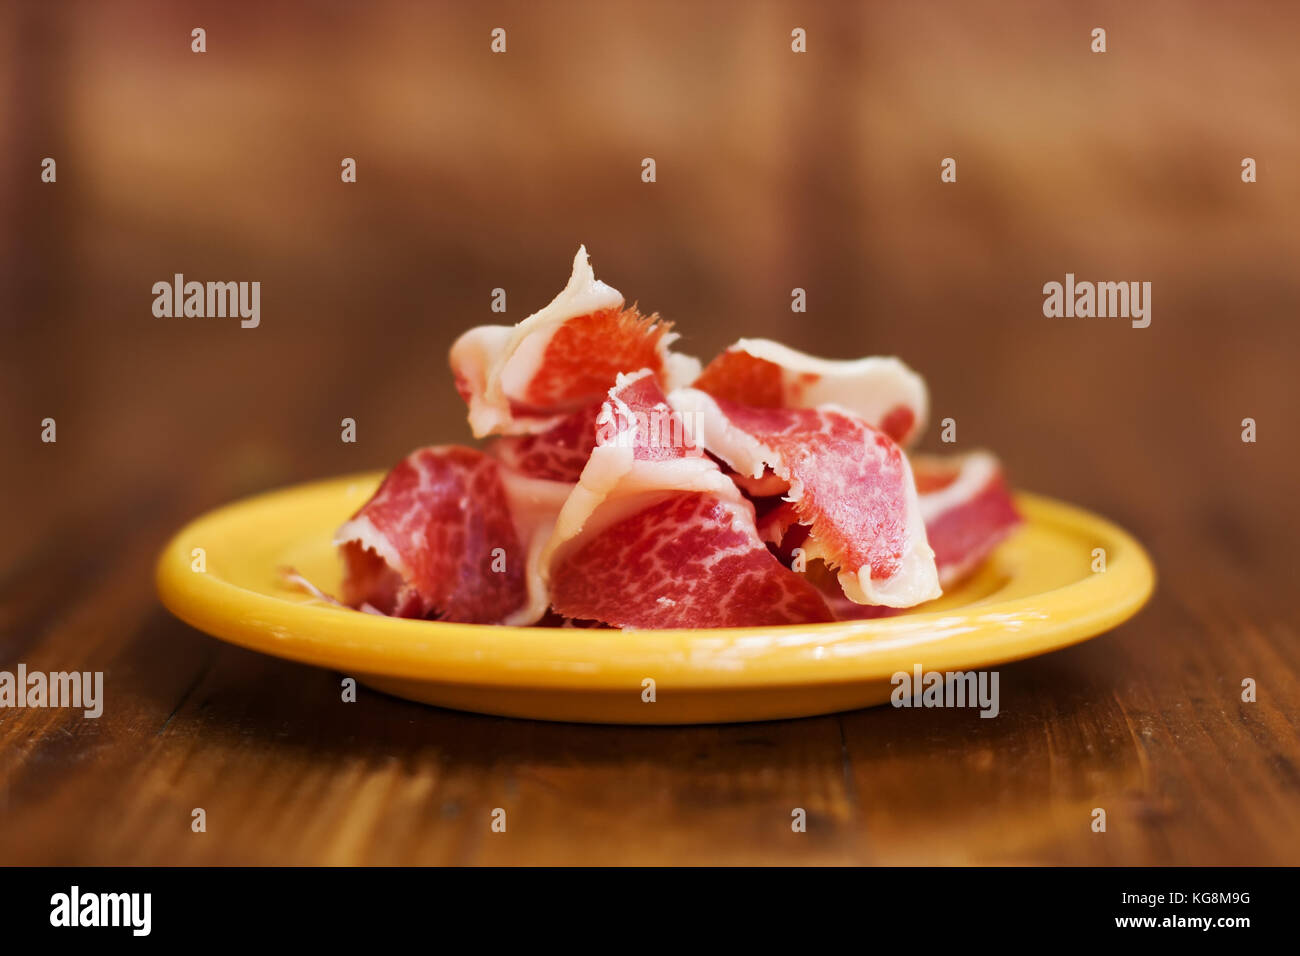 Spanish cuisine tapas food Jamon in a yellow plate. Beautiful appetite slices of raw pork meat. Close-up photo, - Stock Image